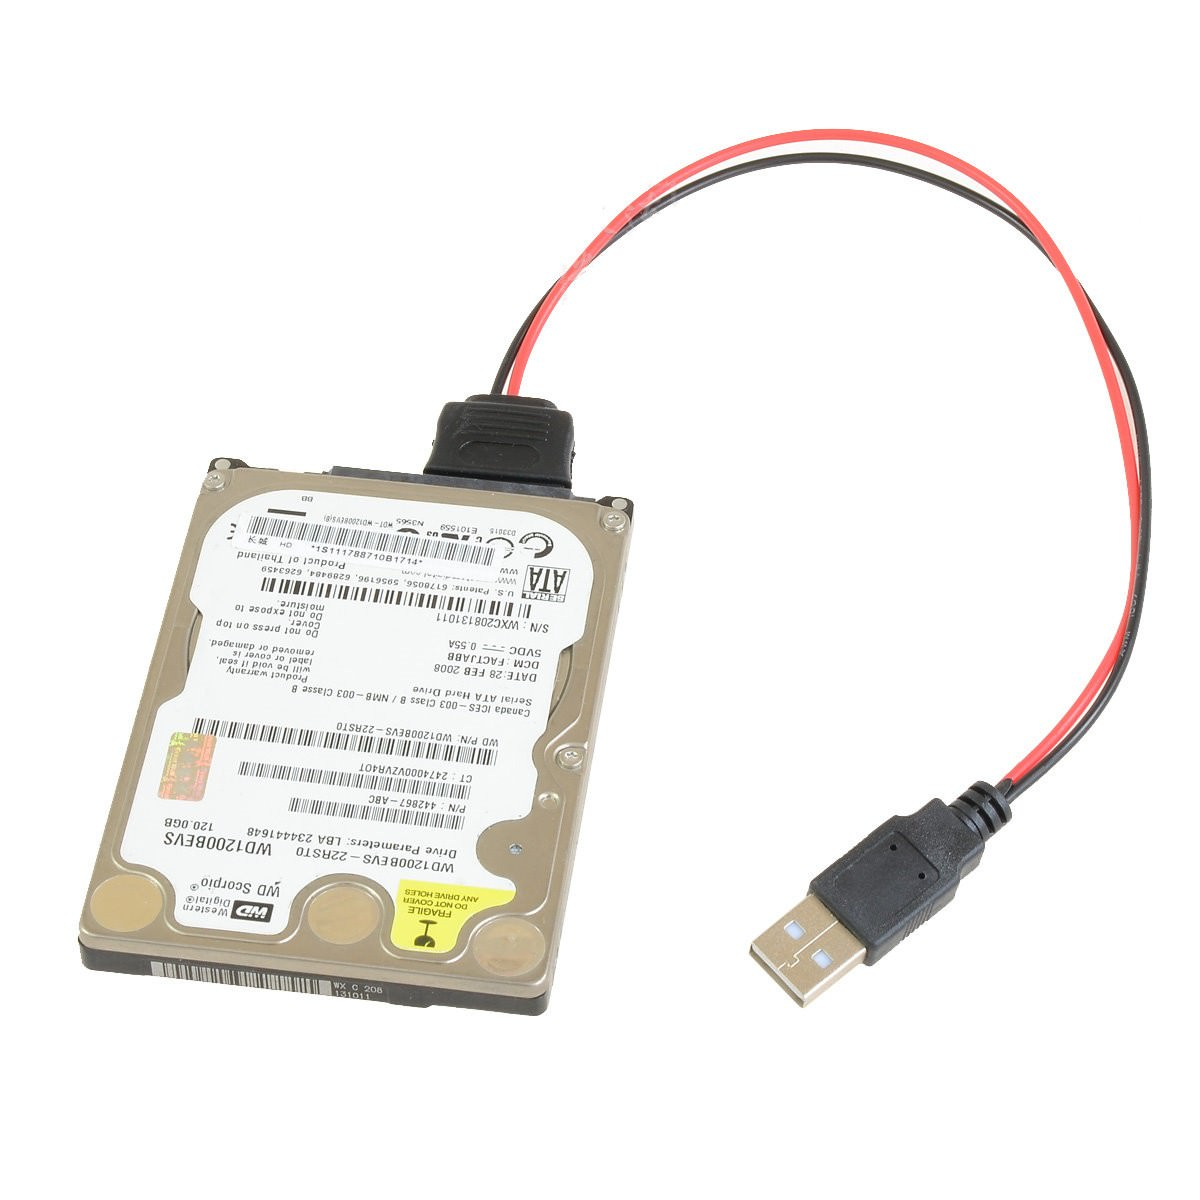 Ide Usb Wiring - machine learning Hard Drive Ide To Usb Cable Wiring Diagram on iphone cable wiring diagram, aircraft wiring diagram, sata hard drive connection diagram,